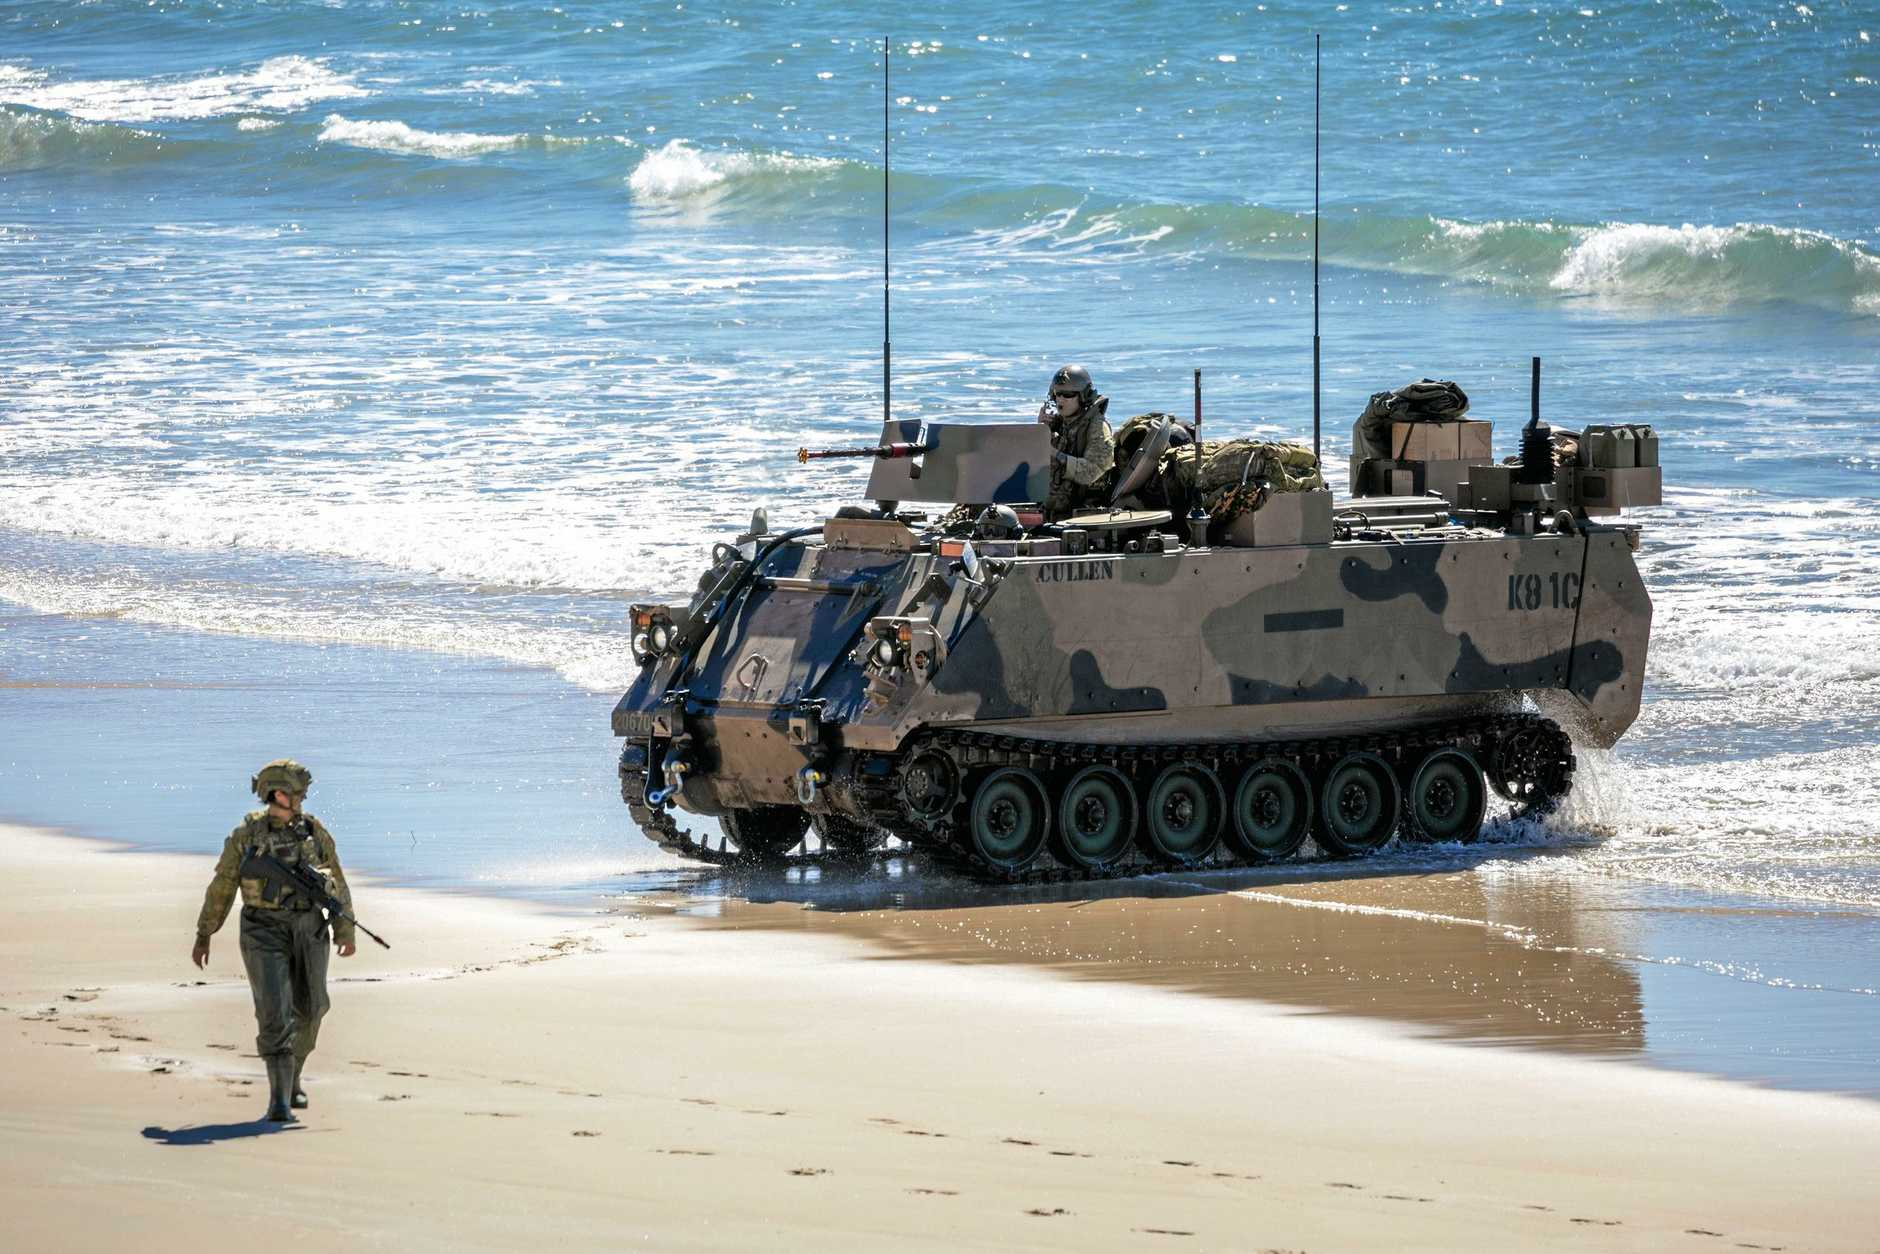 An example of the amphibious assault craft that will land on the beach at Bowen on Monday.